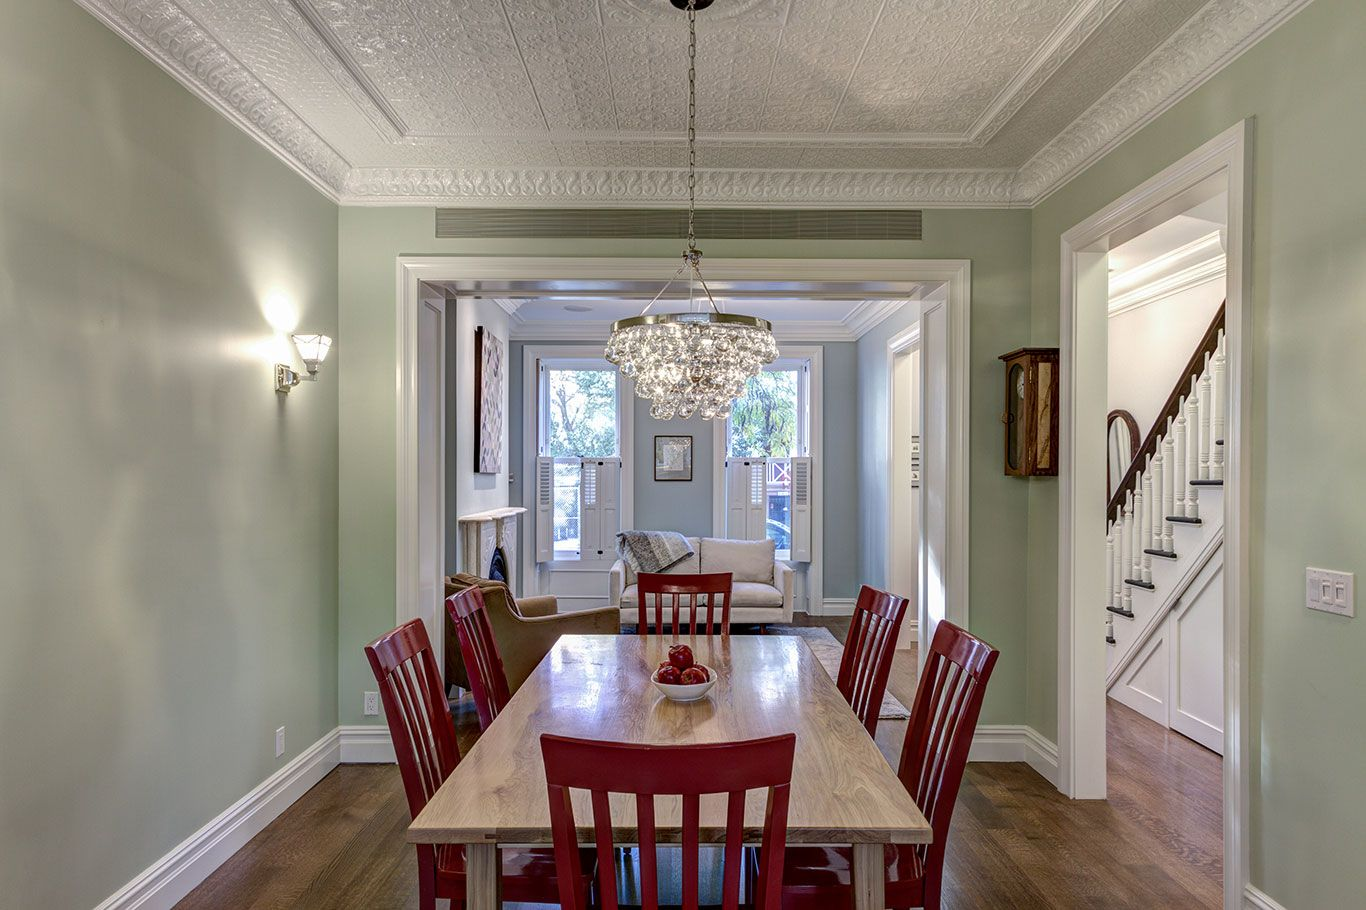 Attractive Park Slope Narrow Townhouse Dining Room, Ben Herzog, Architect | Park Slope  Narrow Townhouse | Pinterest | Townhouse, Architects And Room